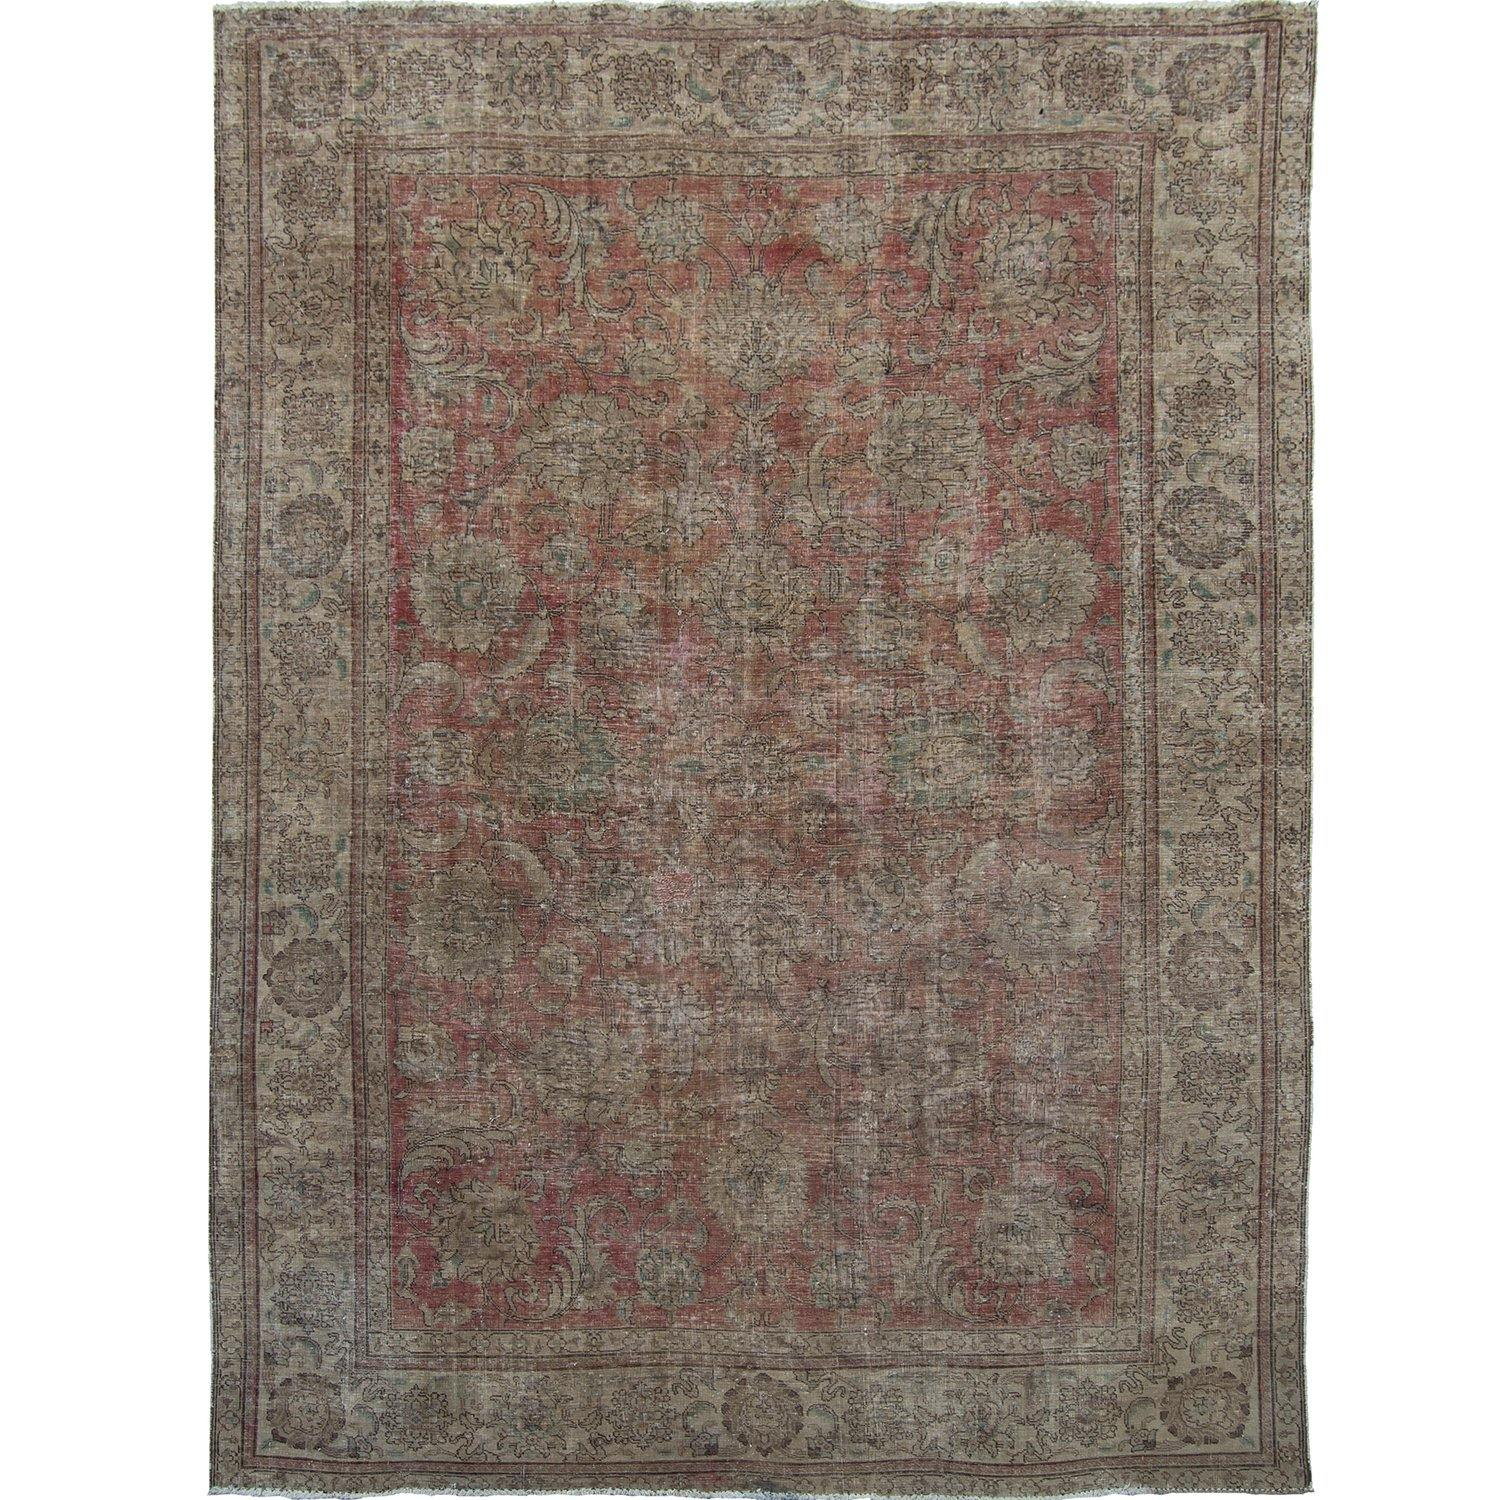 Vintage Hand-knotted Persian Wool Rug 257cm x 346cm Persian-Rug | House-of-Haghi | NewMarket | Auckland | NZ | Handmade Persian Rugs | Hand Knotted Persian Rugs